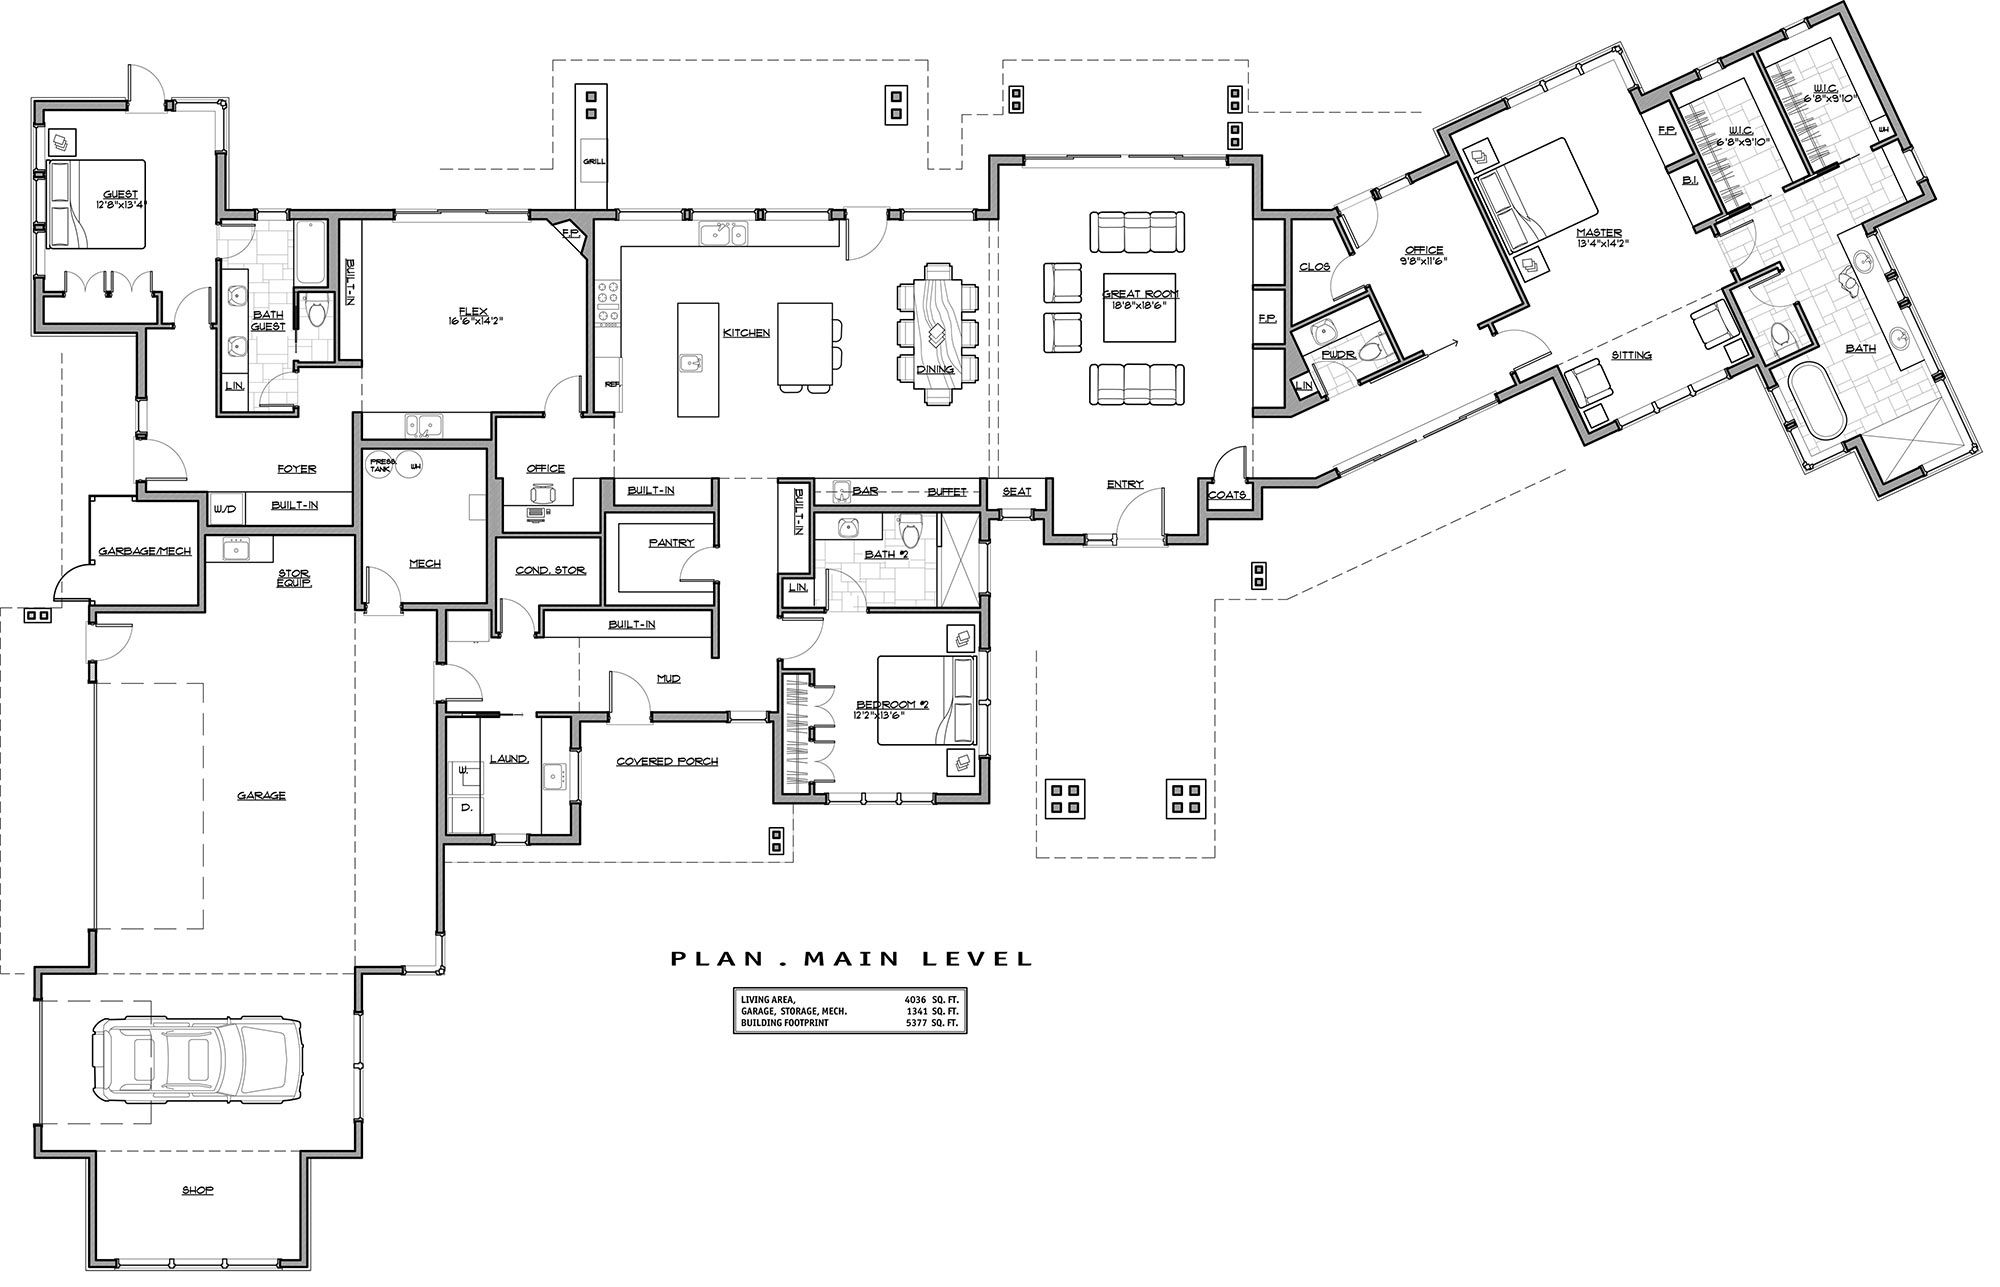 1st Floor Plan image of Modern Mountain Home (With images ...